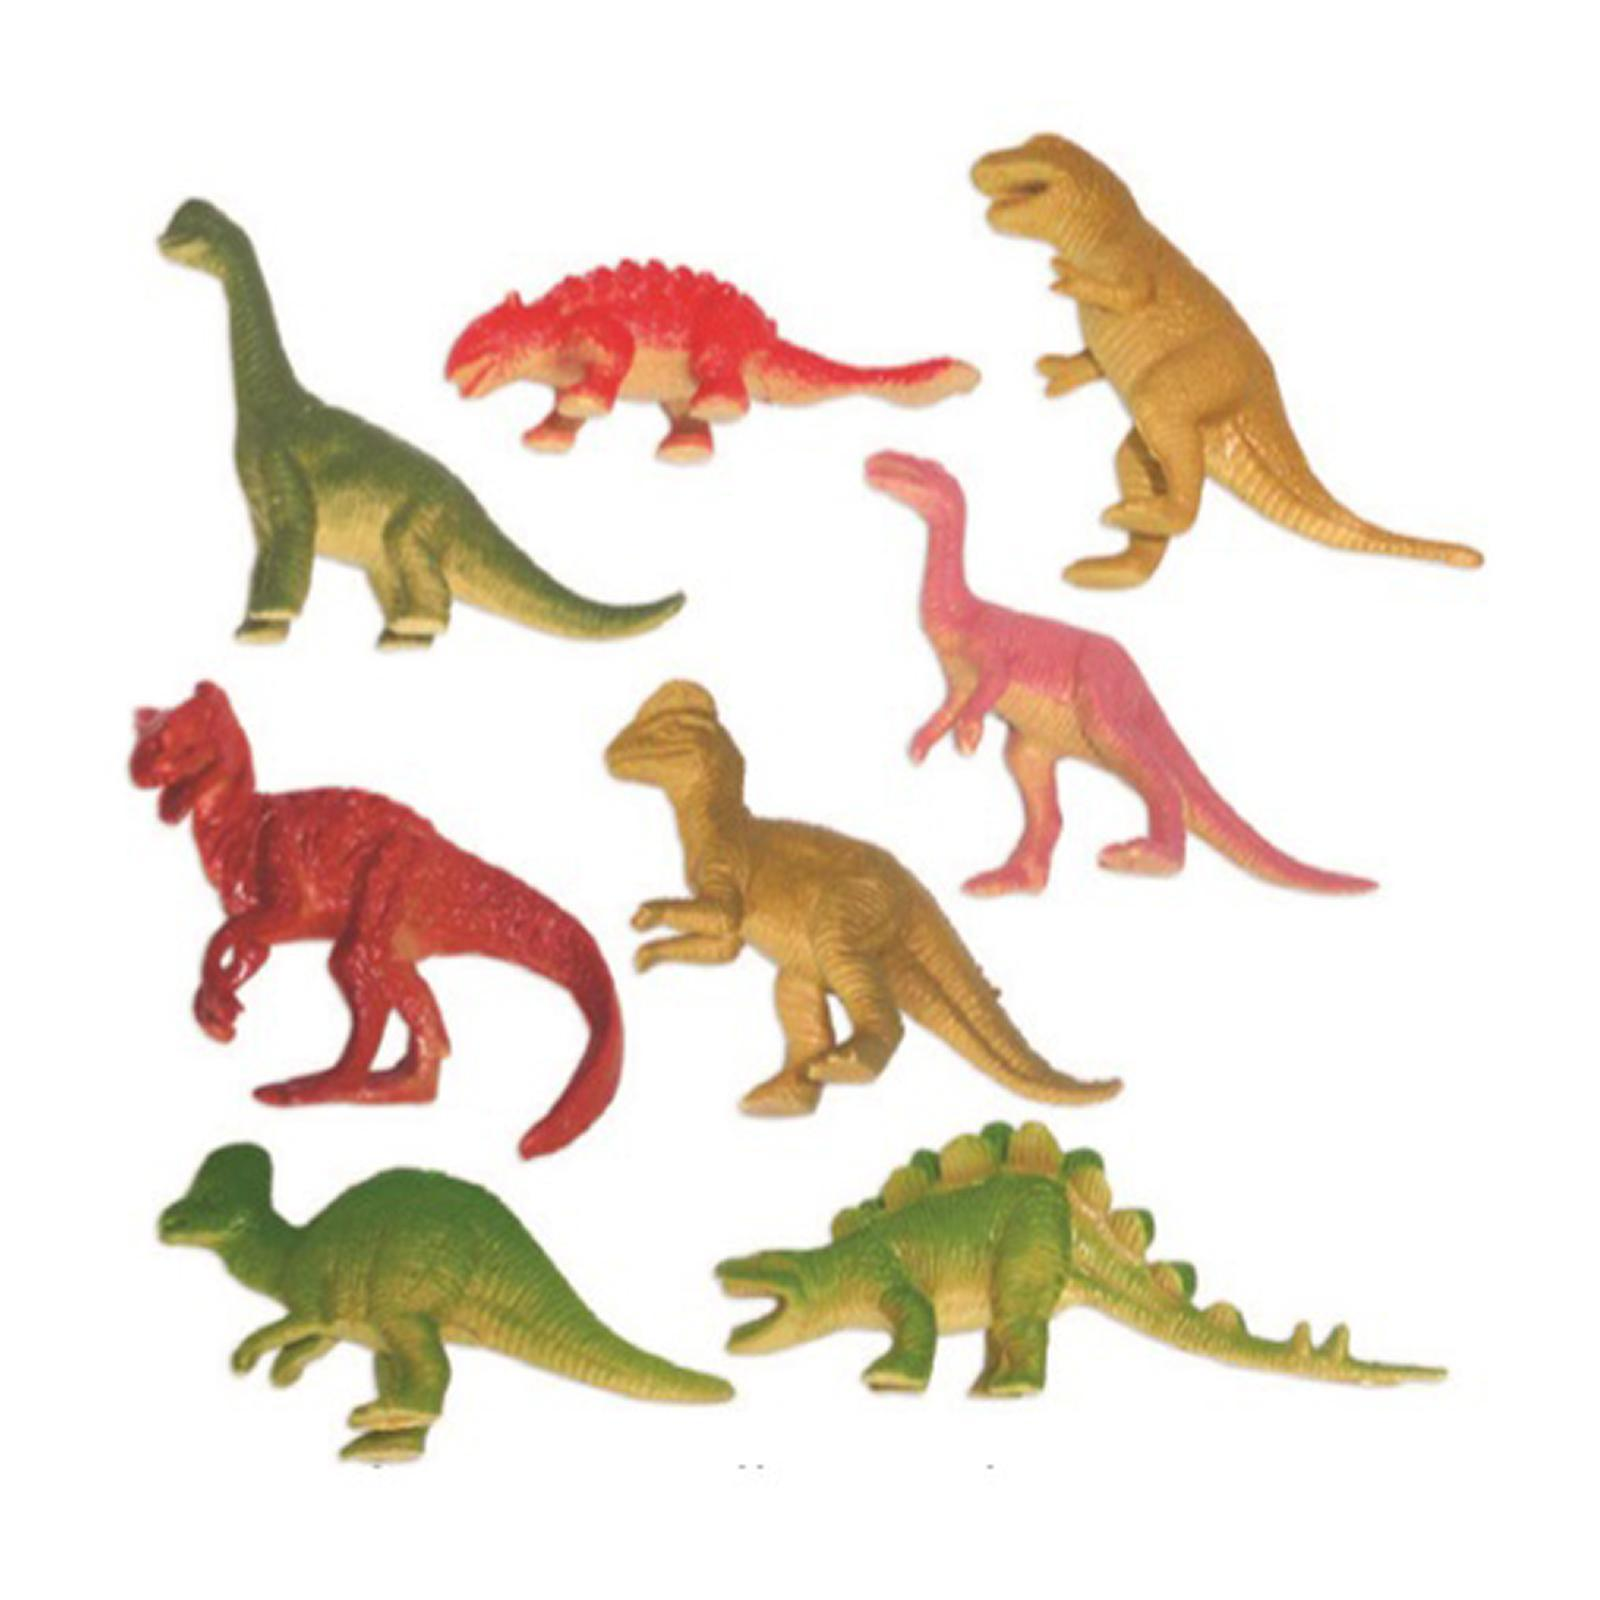 Artwrap Party Favors - Dinosaurs